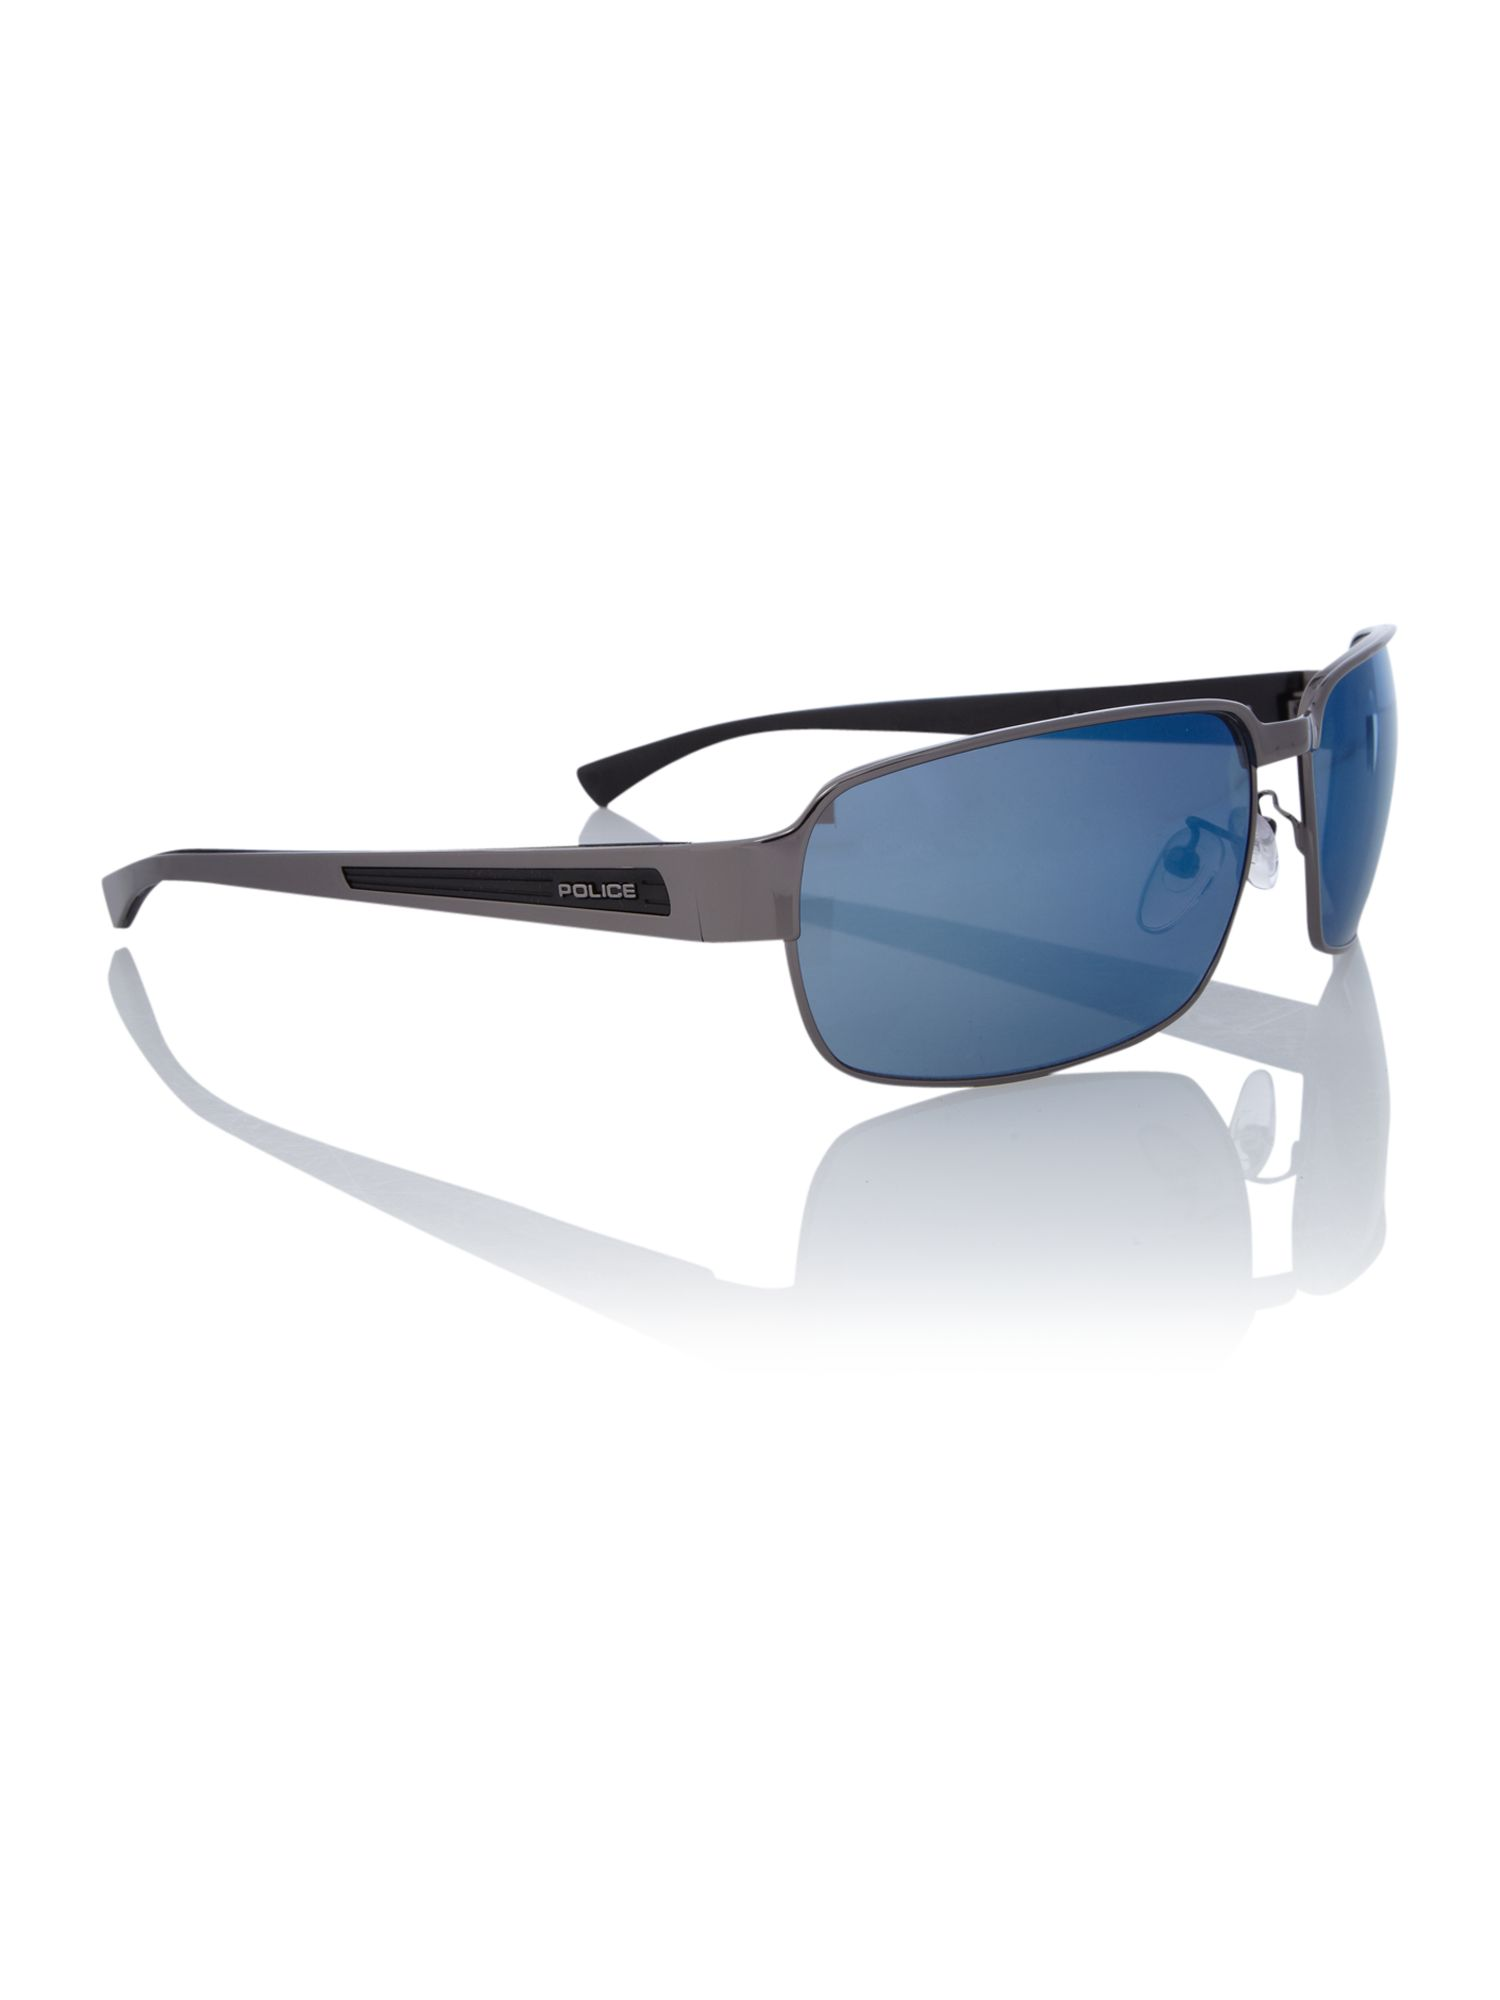 Mens S8653 Sunglasses